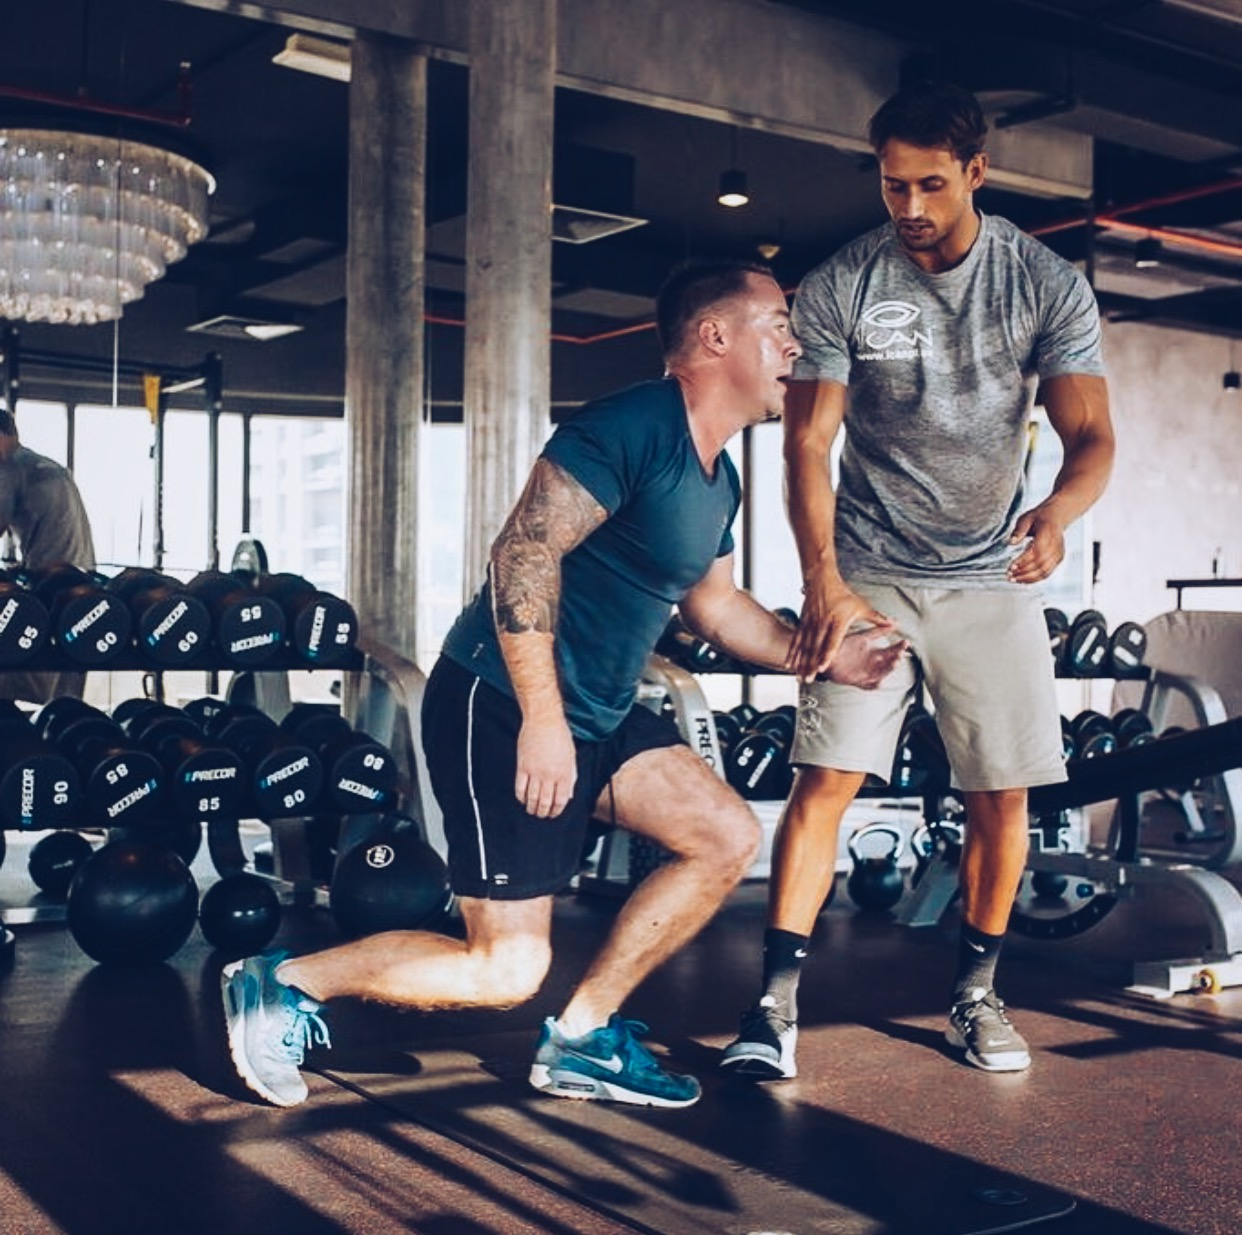 50 BLOCK - 50 X PT£2,500 PAID IN ADVANCE£50 PER SESSIONYour training programme includes;- 50 x 1 HOUR PRIVATE PT SESSIONS- MINDSET COACHING- KINETIC MOVEMENT ASSESSMENT- FULL NUTRITIONAL PLANNING AND GUIDANCE- ONGOING SUPPORT FROM THE WORLDS LEADING FITNESS COACHES